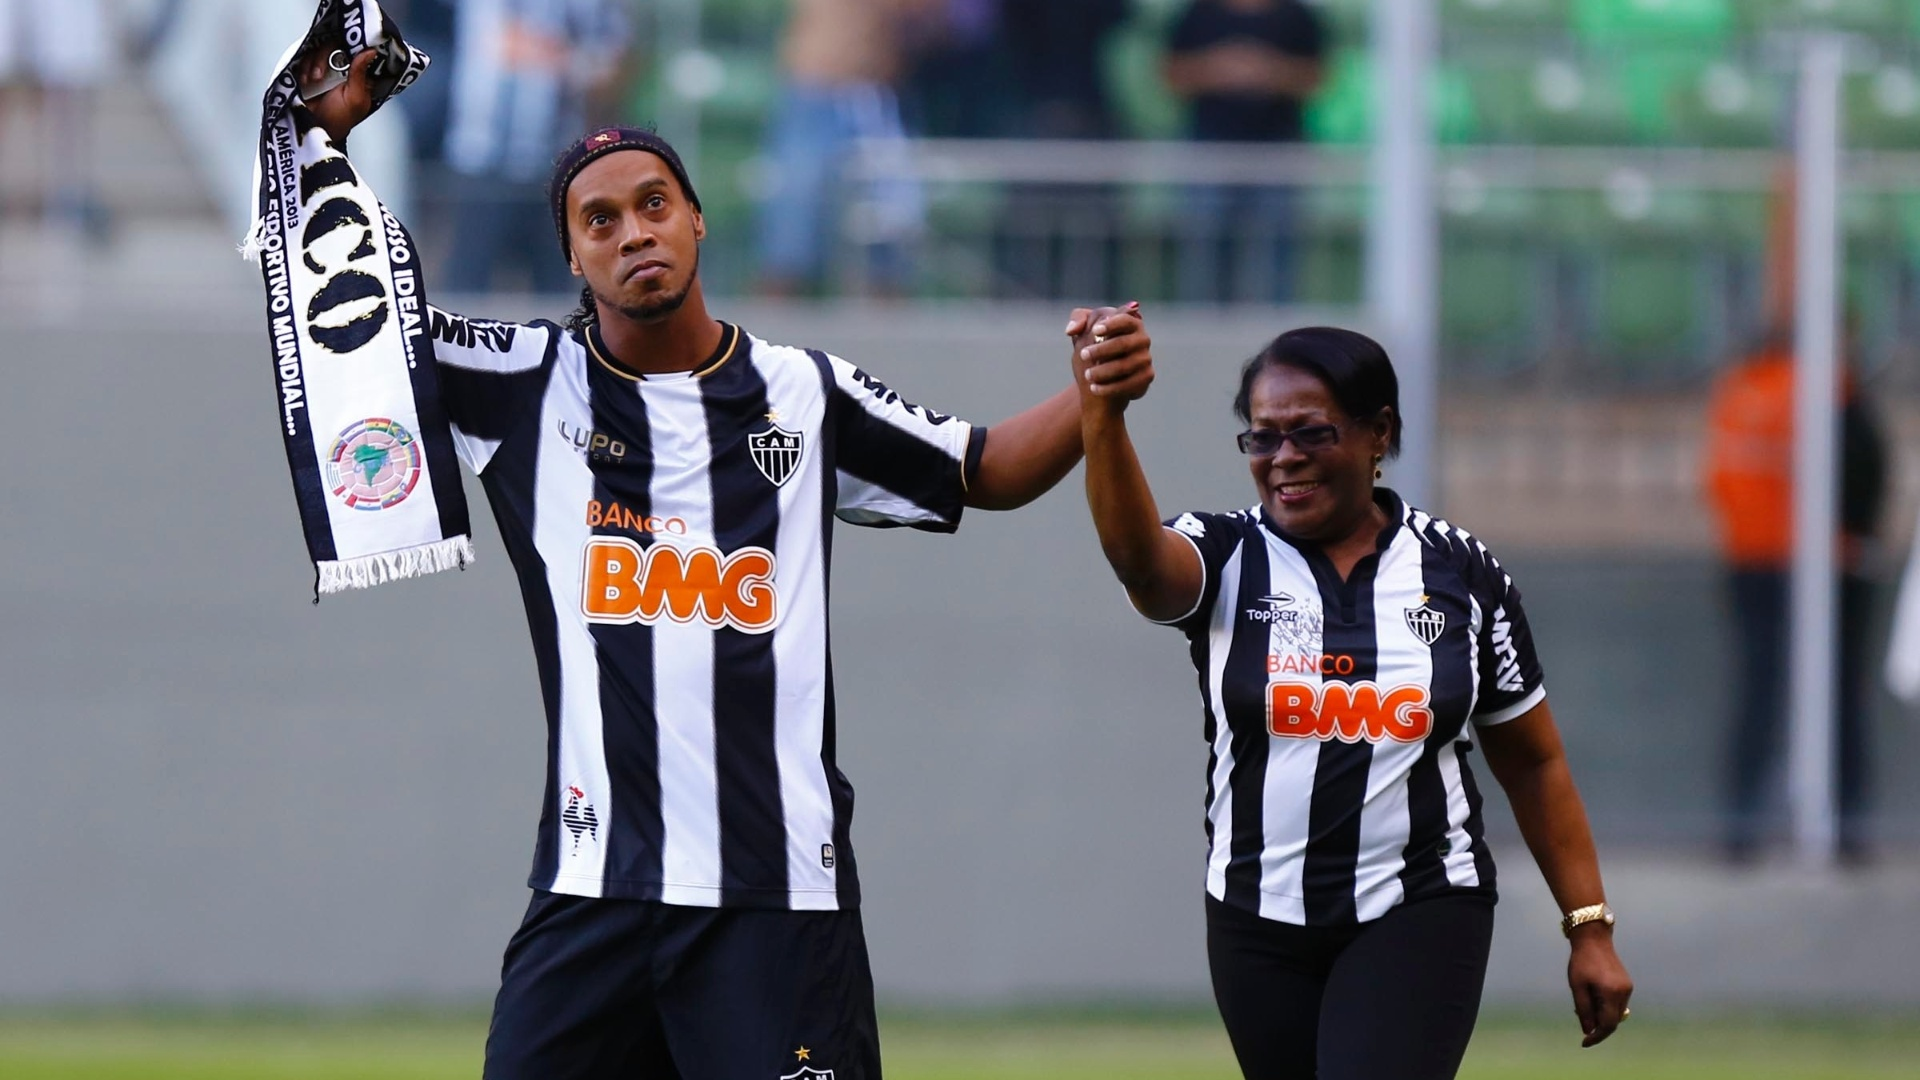 12.mai.2013 - Ronaldinho Gacho leva a me at o gramado para ser homenageada pelos torcedores atleticanos antes do jogo contra o Cruzeiro